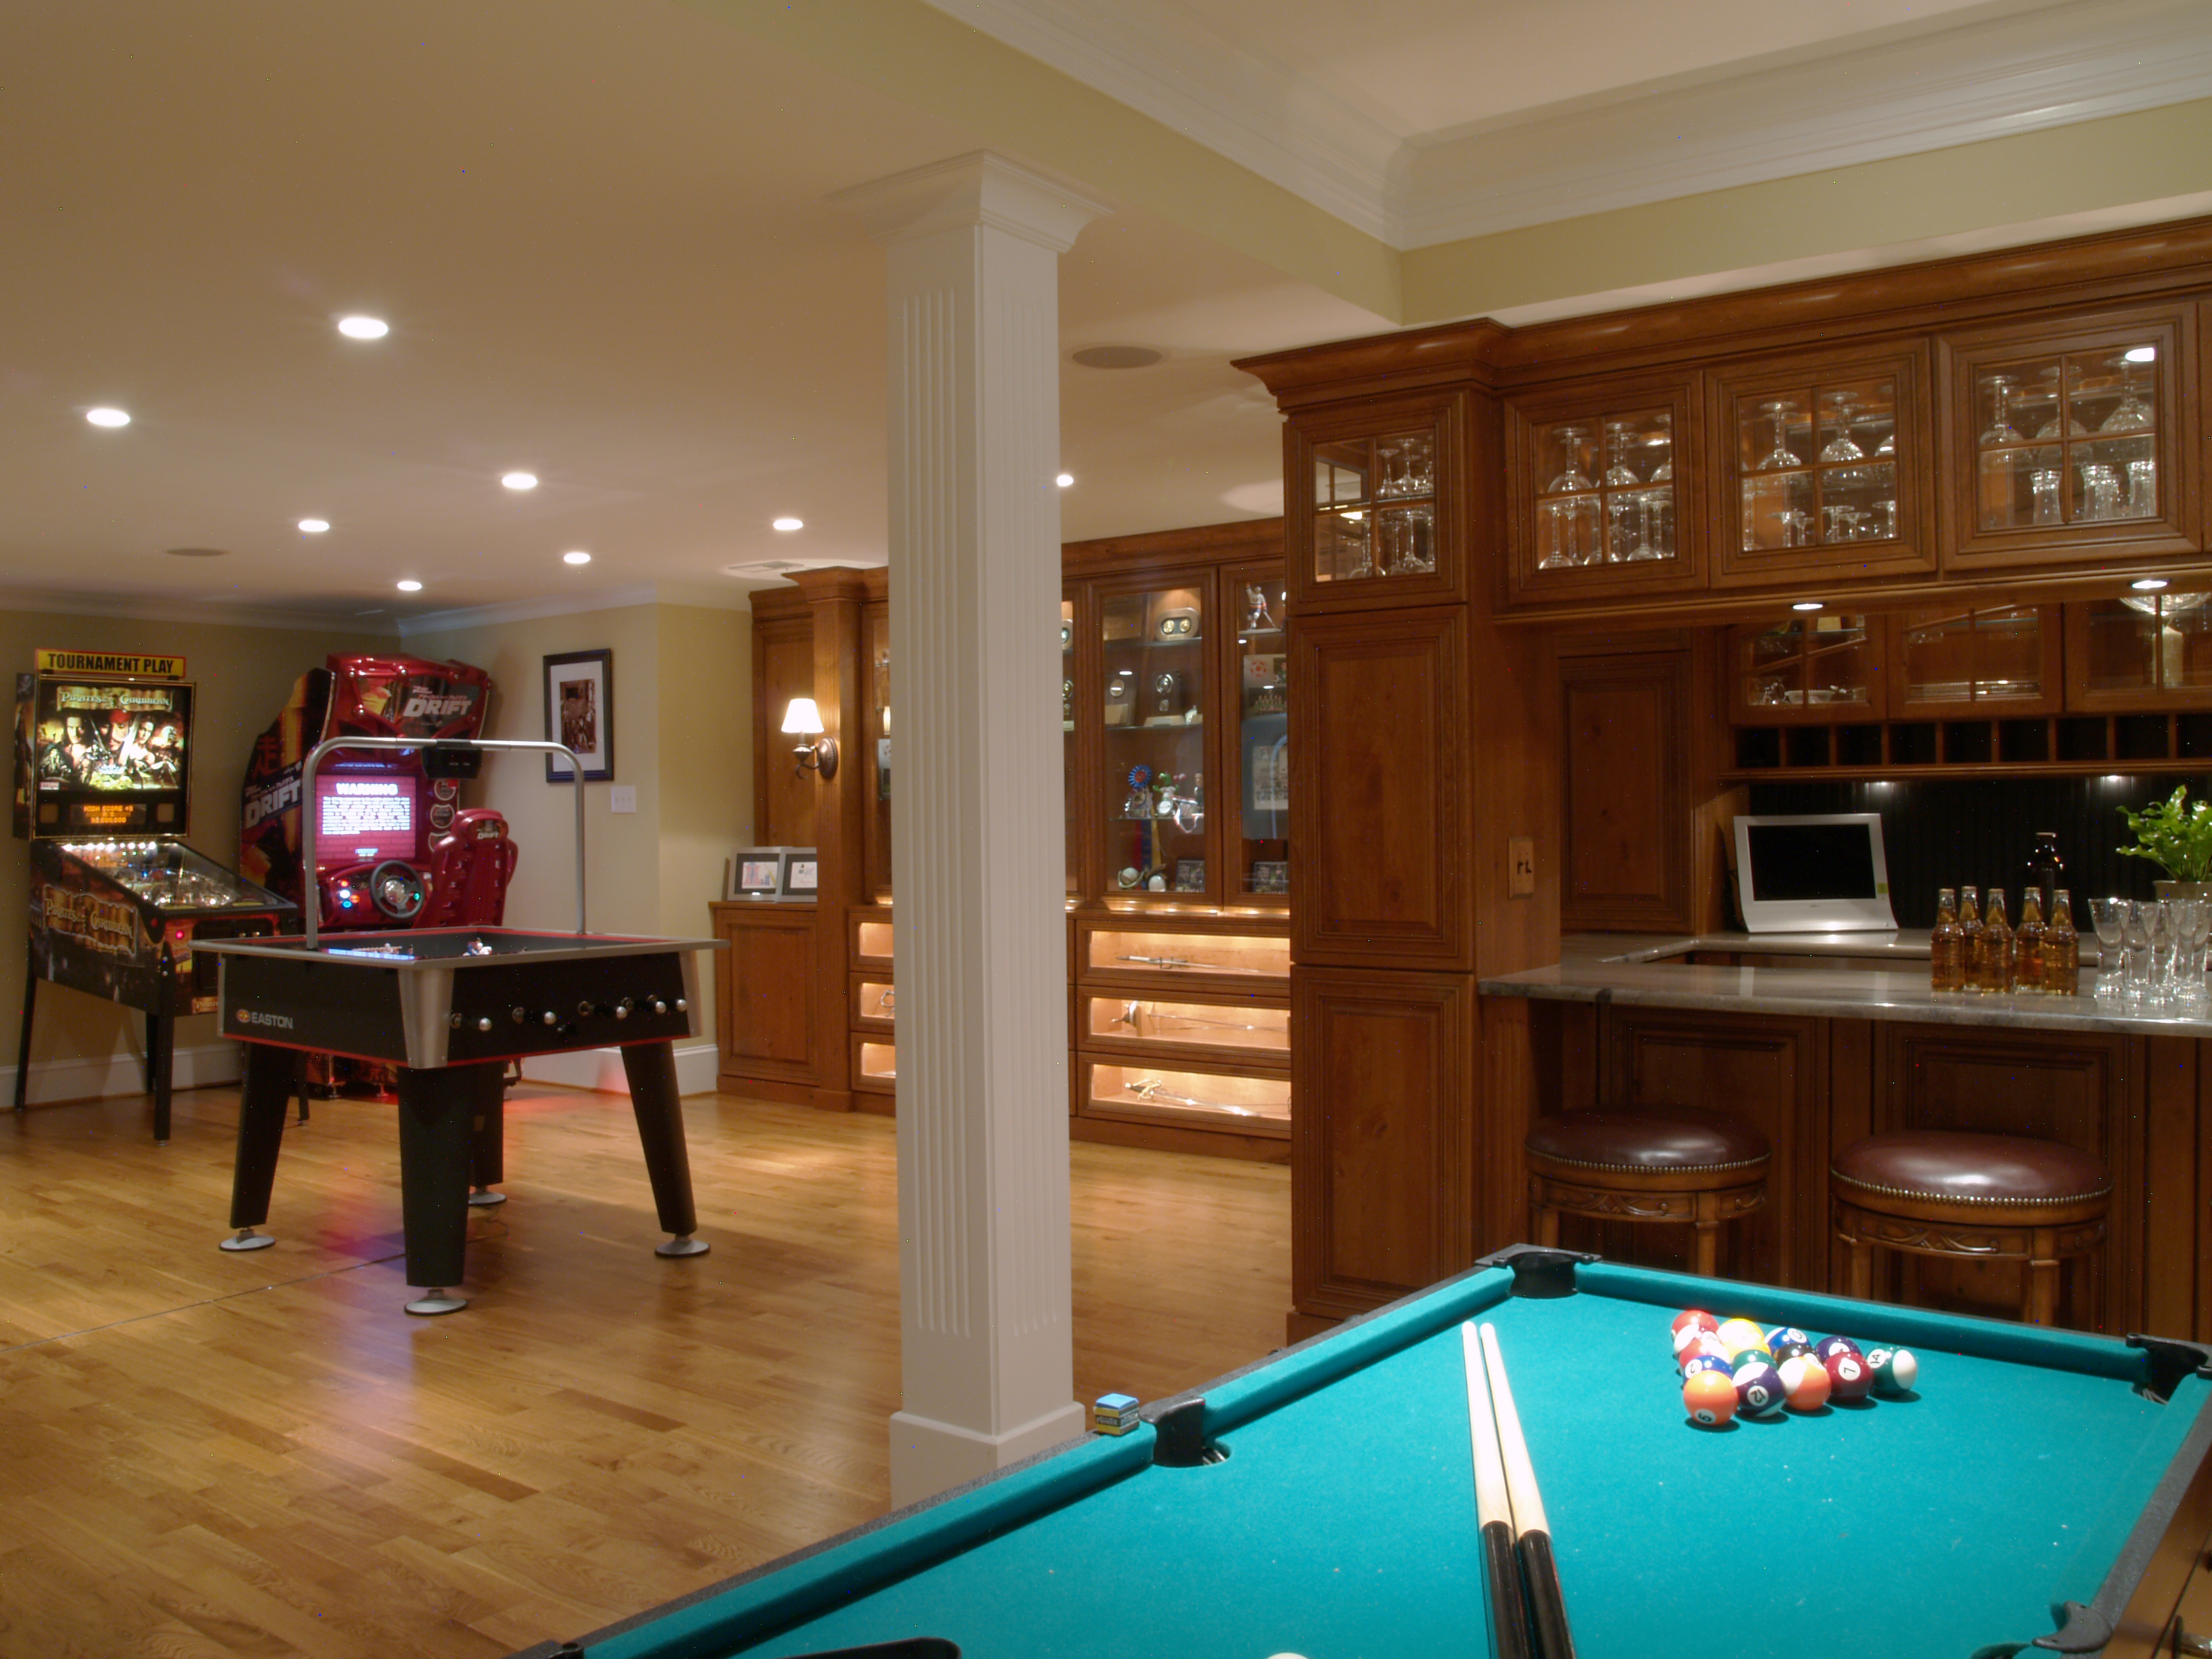 Man Cave Arcade Game Room Main Line Basement Renovation On The Level